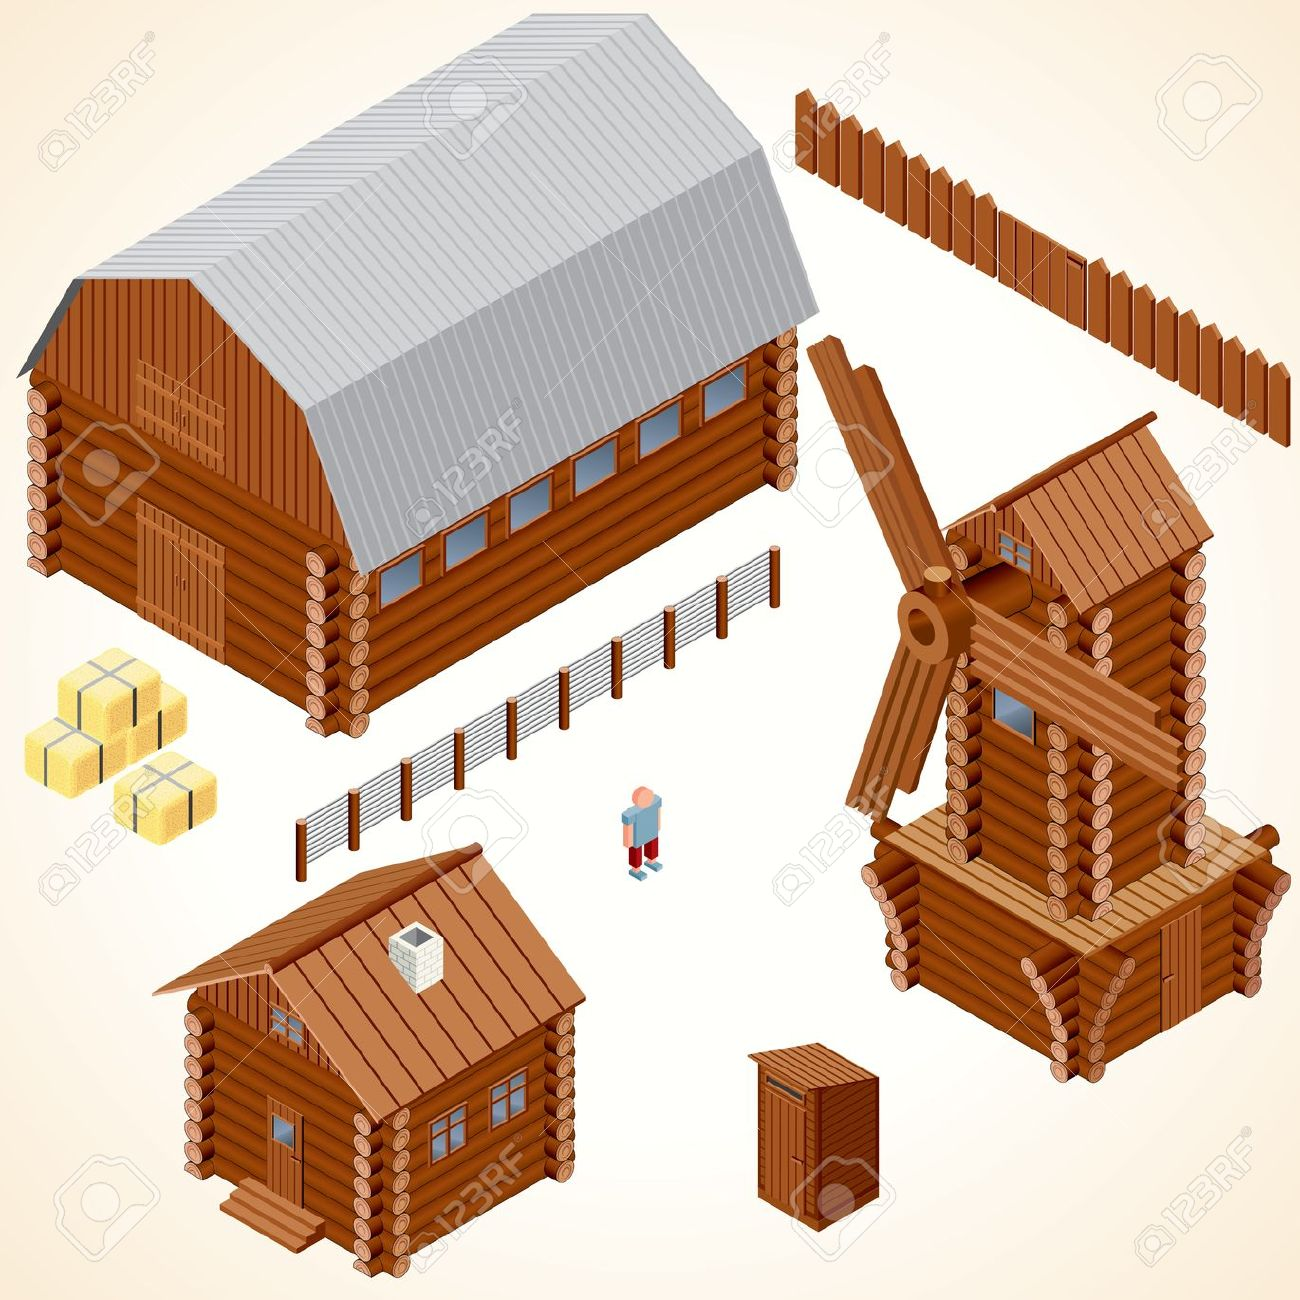 Isometric Wooden Houses. Log Cabin, Wood Windmill, Rustic Outhouse.